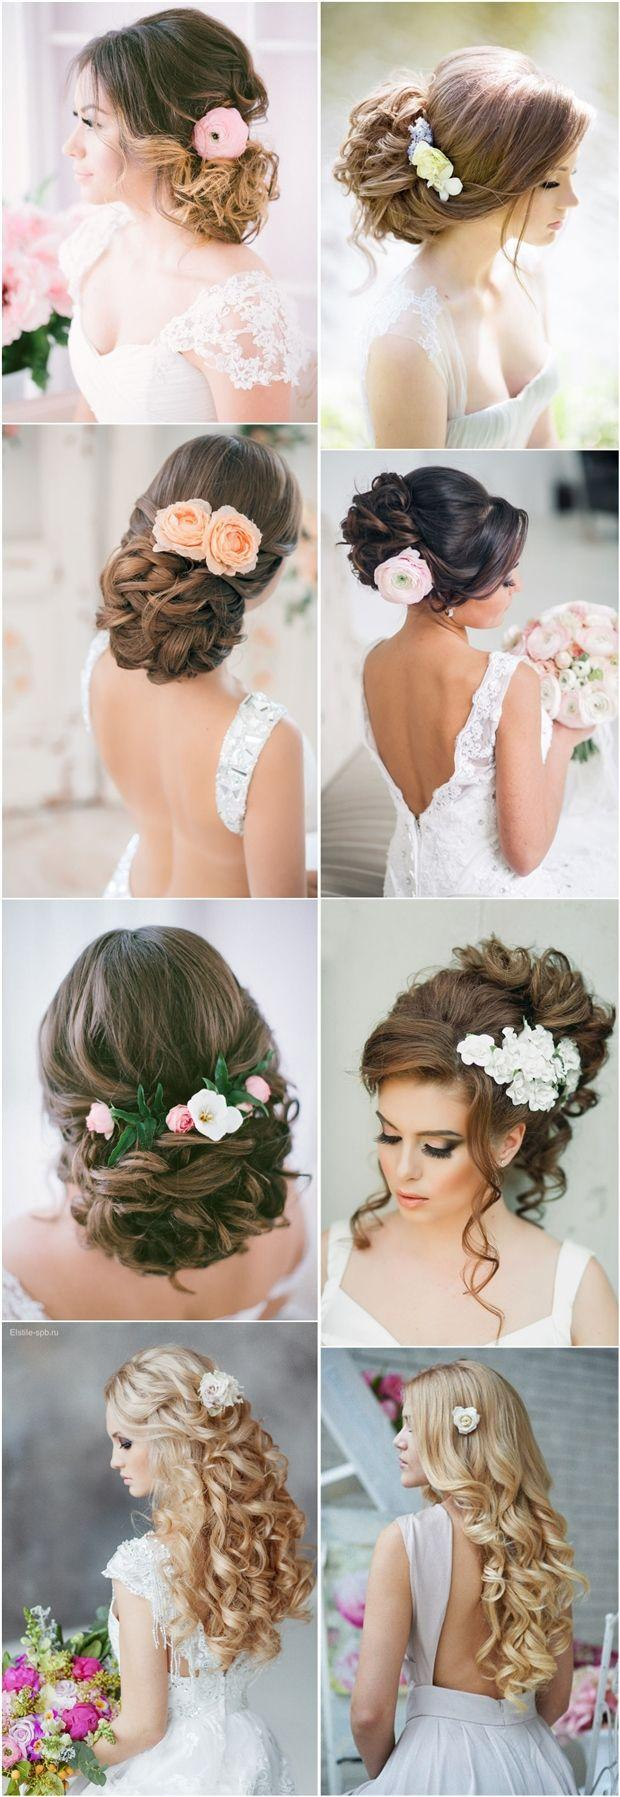 Wedding - Long Wedding Hairstyles Updos With Flowers